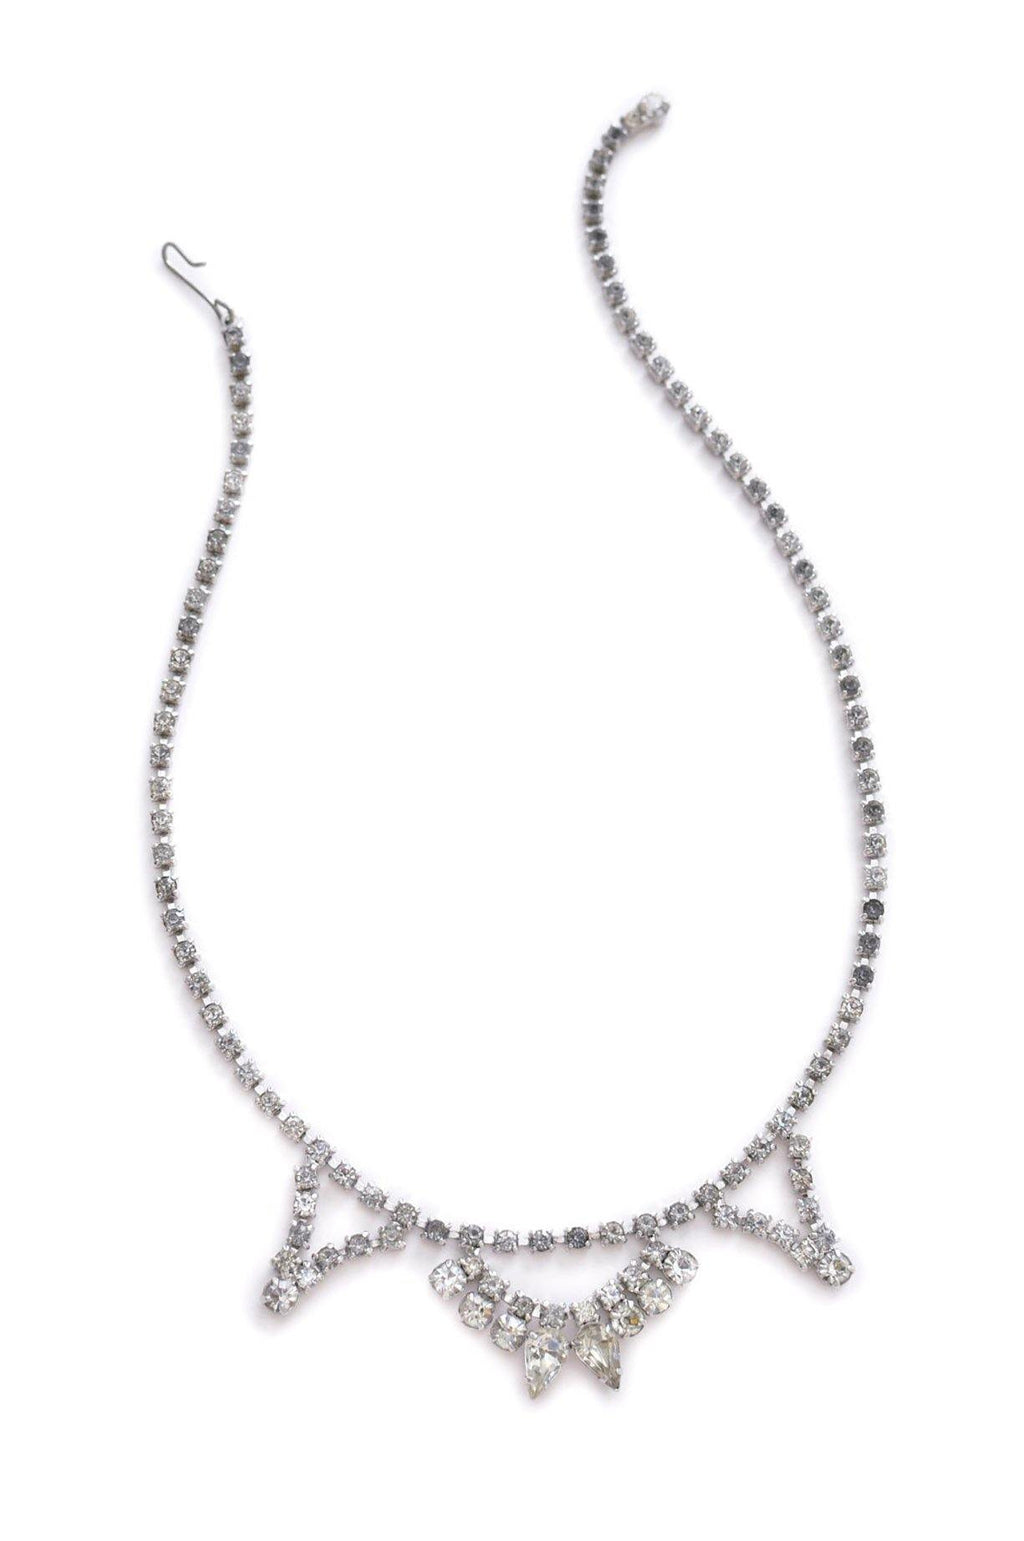 Dainty Rhinestone Statement Necklace